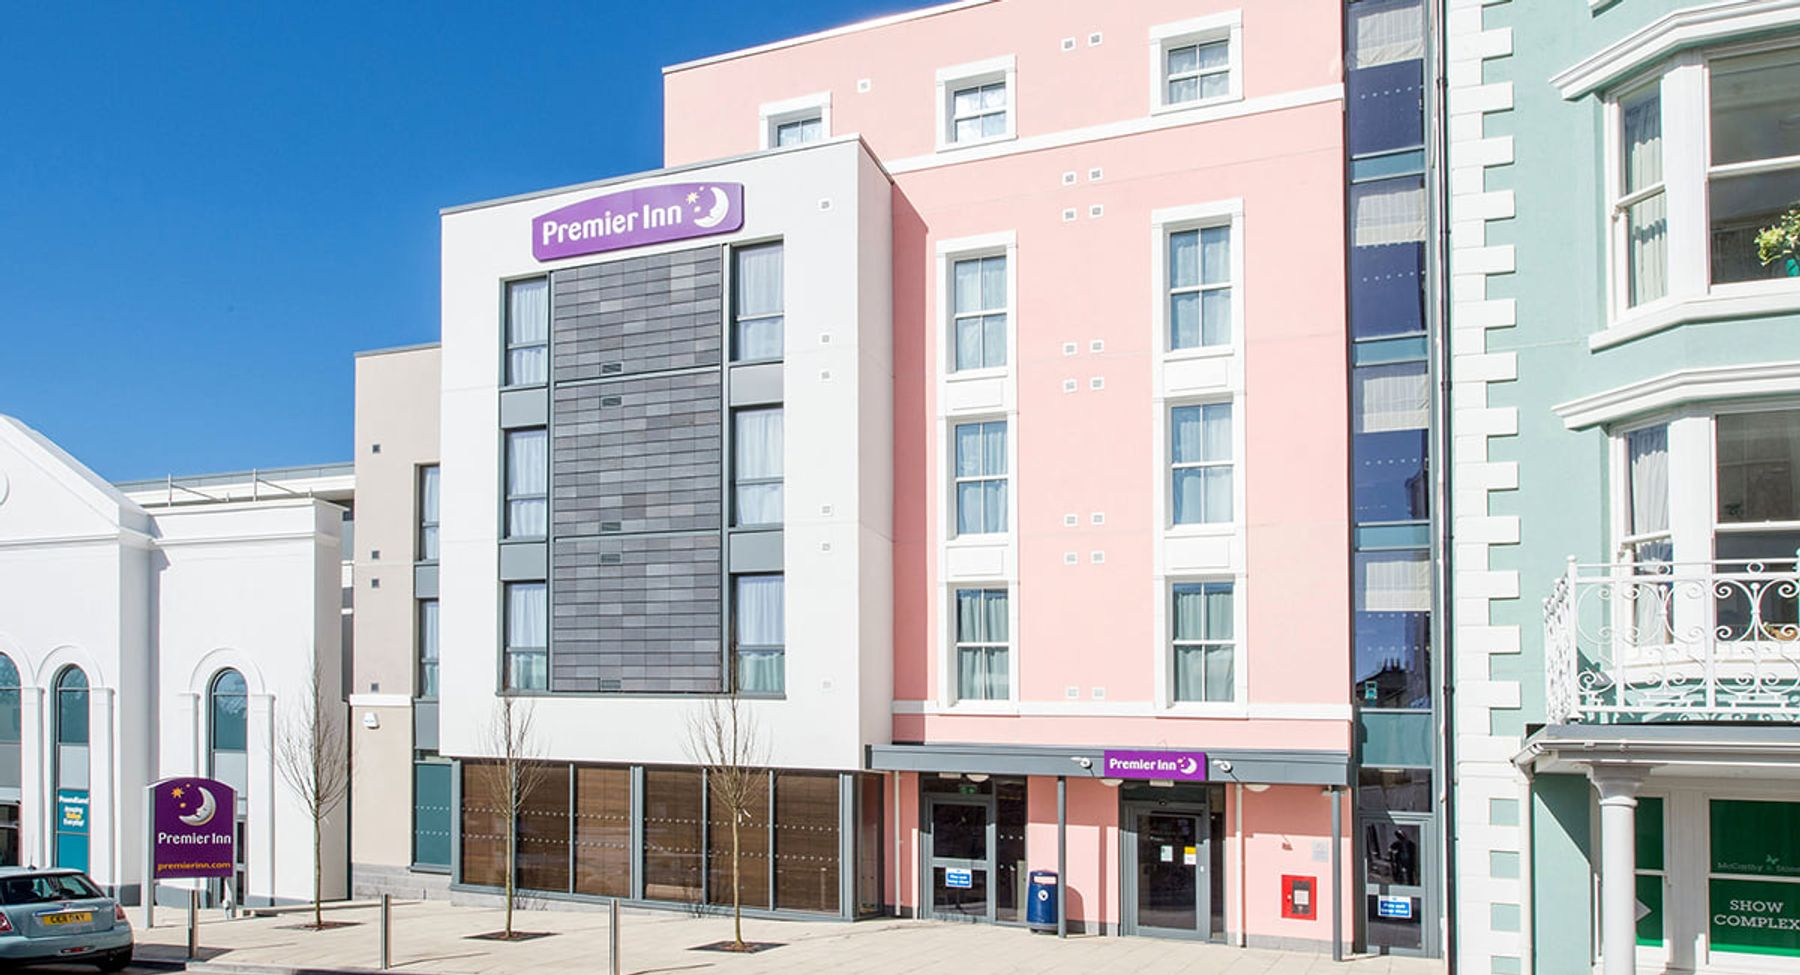 A view of a Premier Inn property in the UK